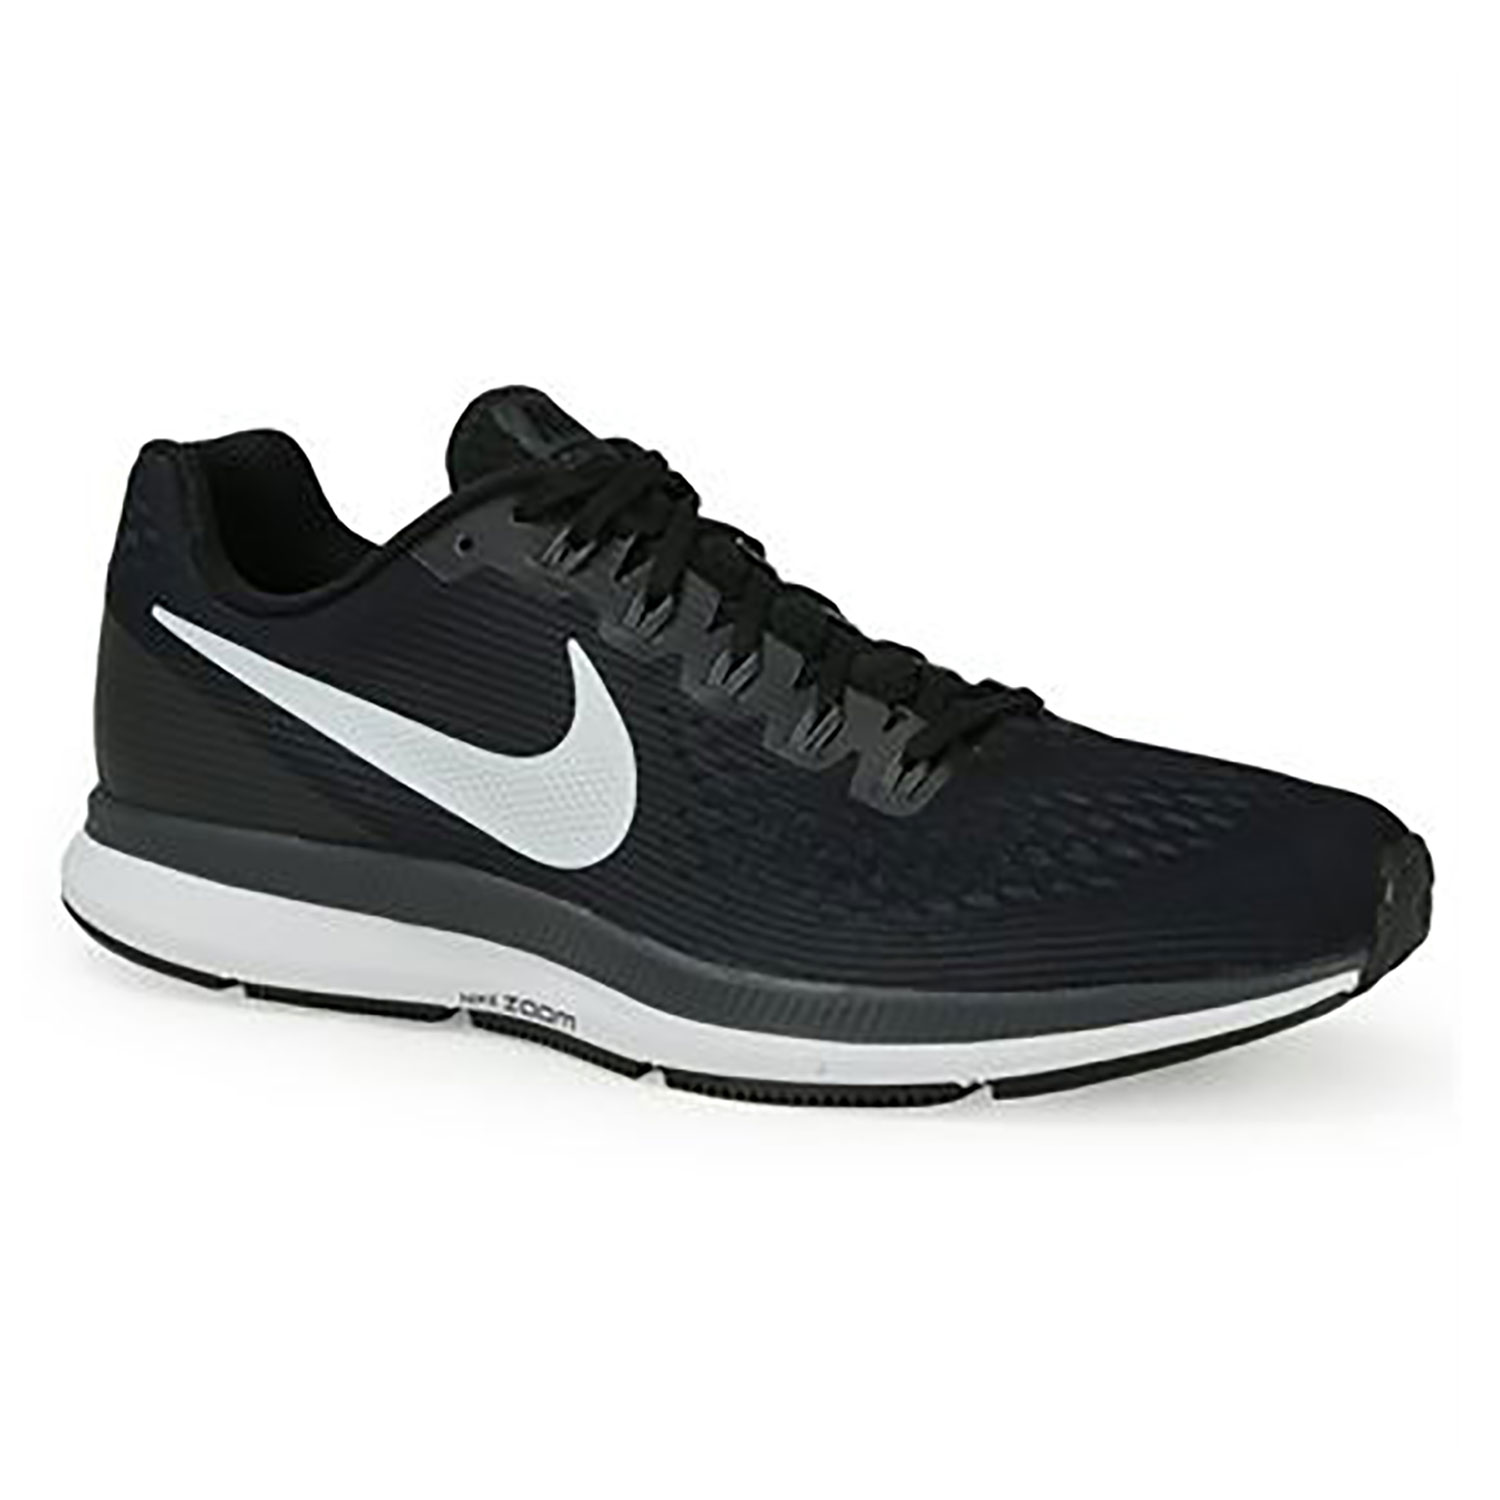 be2c9d5979607 Nike Air Zoom Pegasus 34 Mens Running Shoe